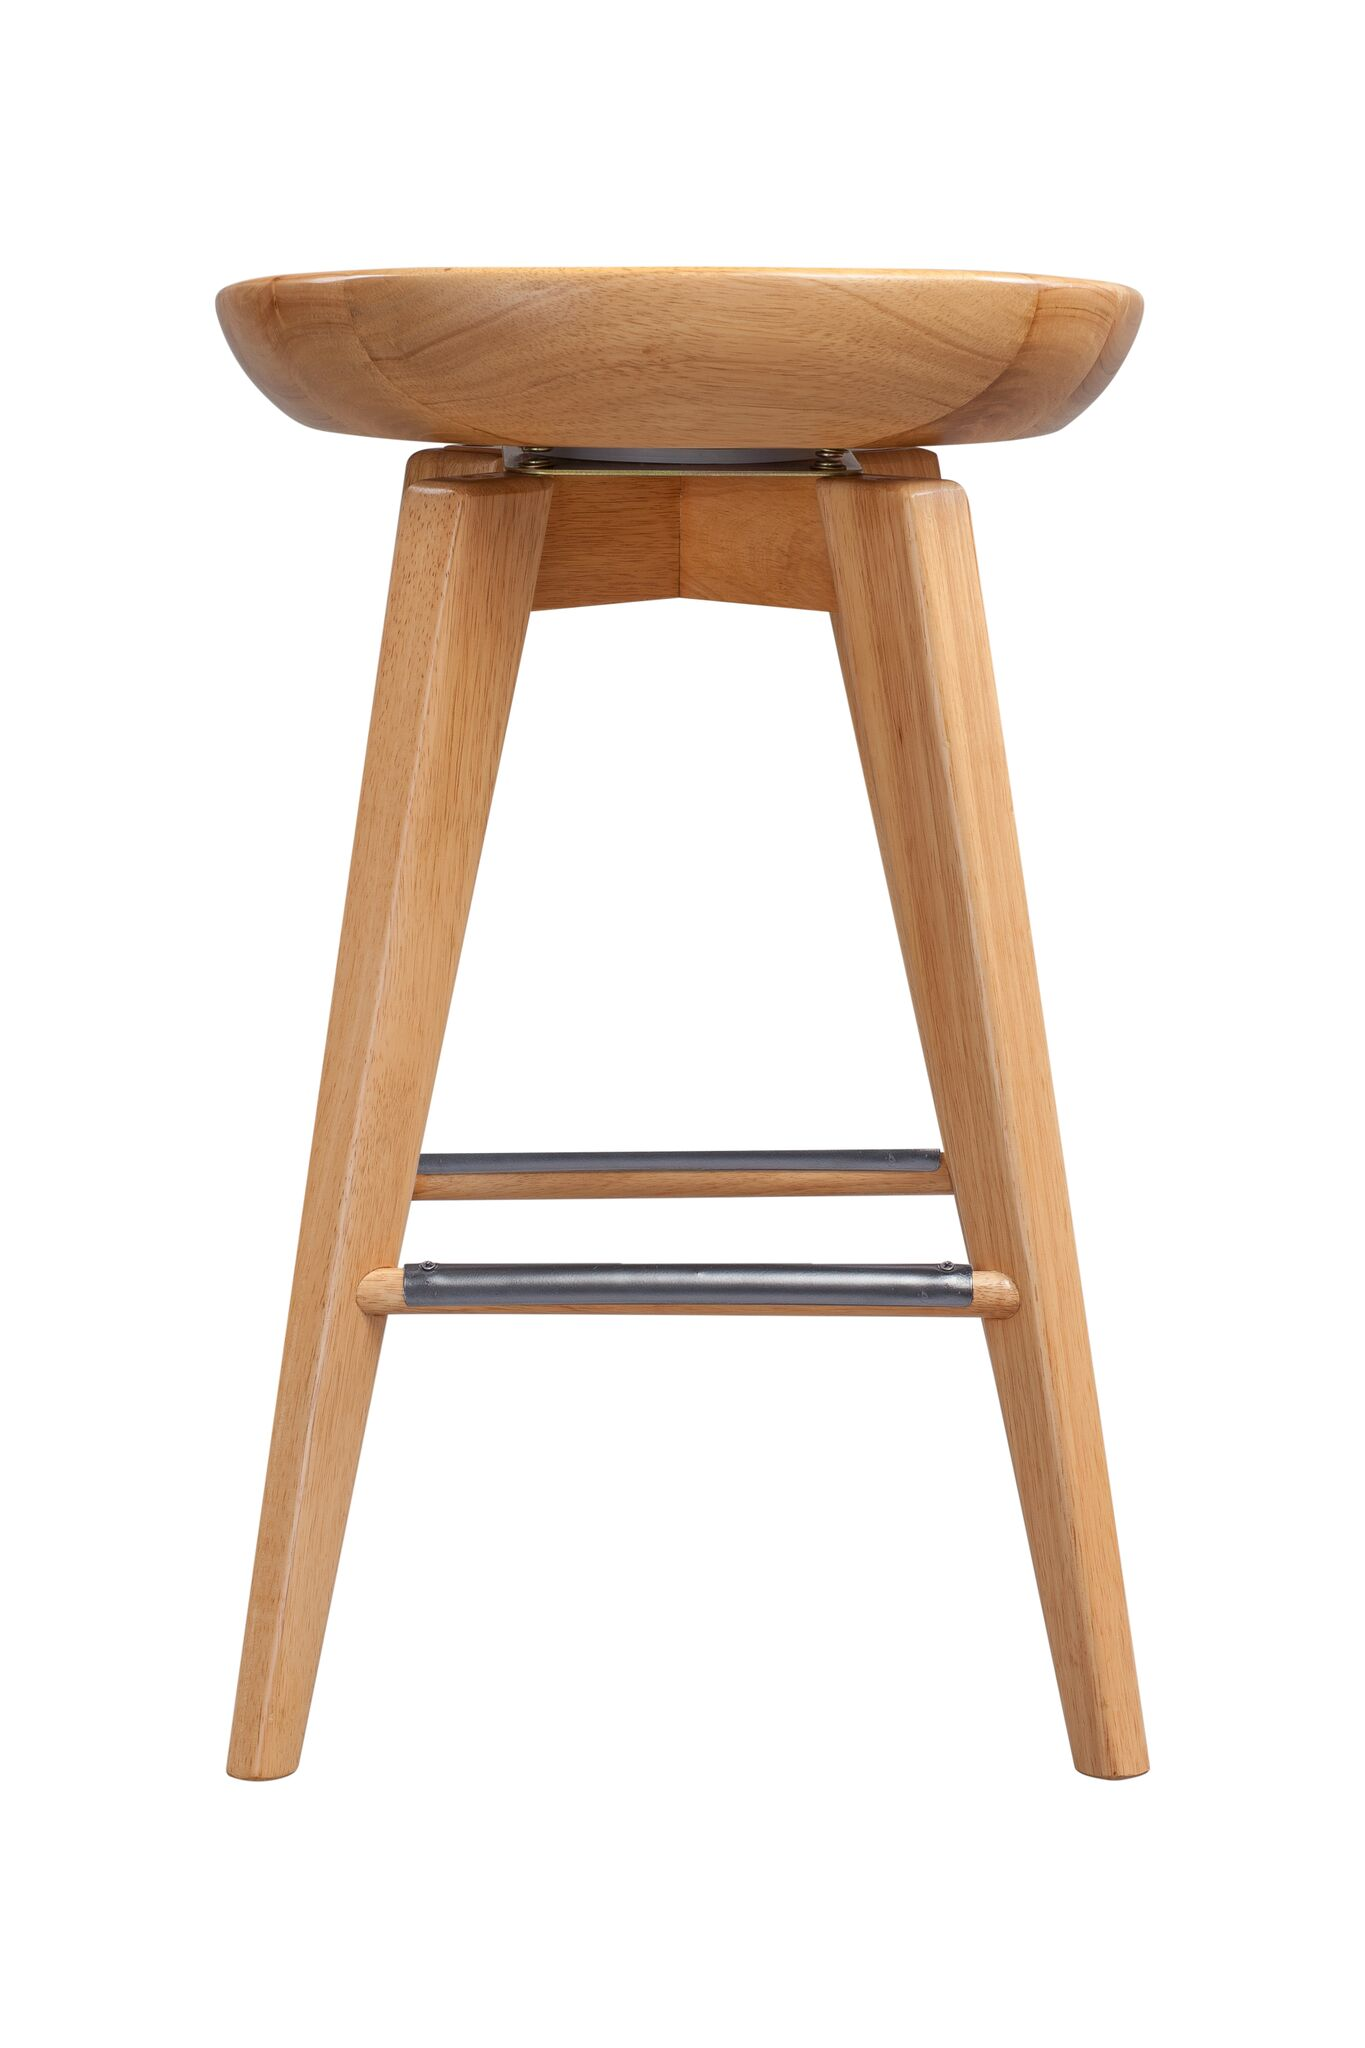 Miraculous Boraam Bali 24 Wood Swivel Counter Stool Multiple Finishes Squirreltailoven Fun Painted Chair Ideas Images Squirreltailovenorg